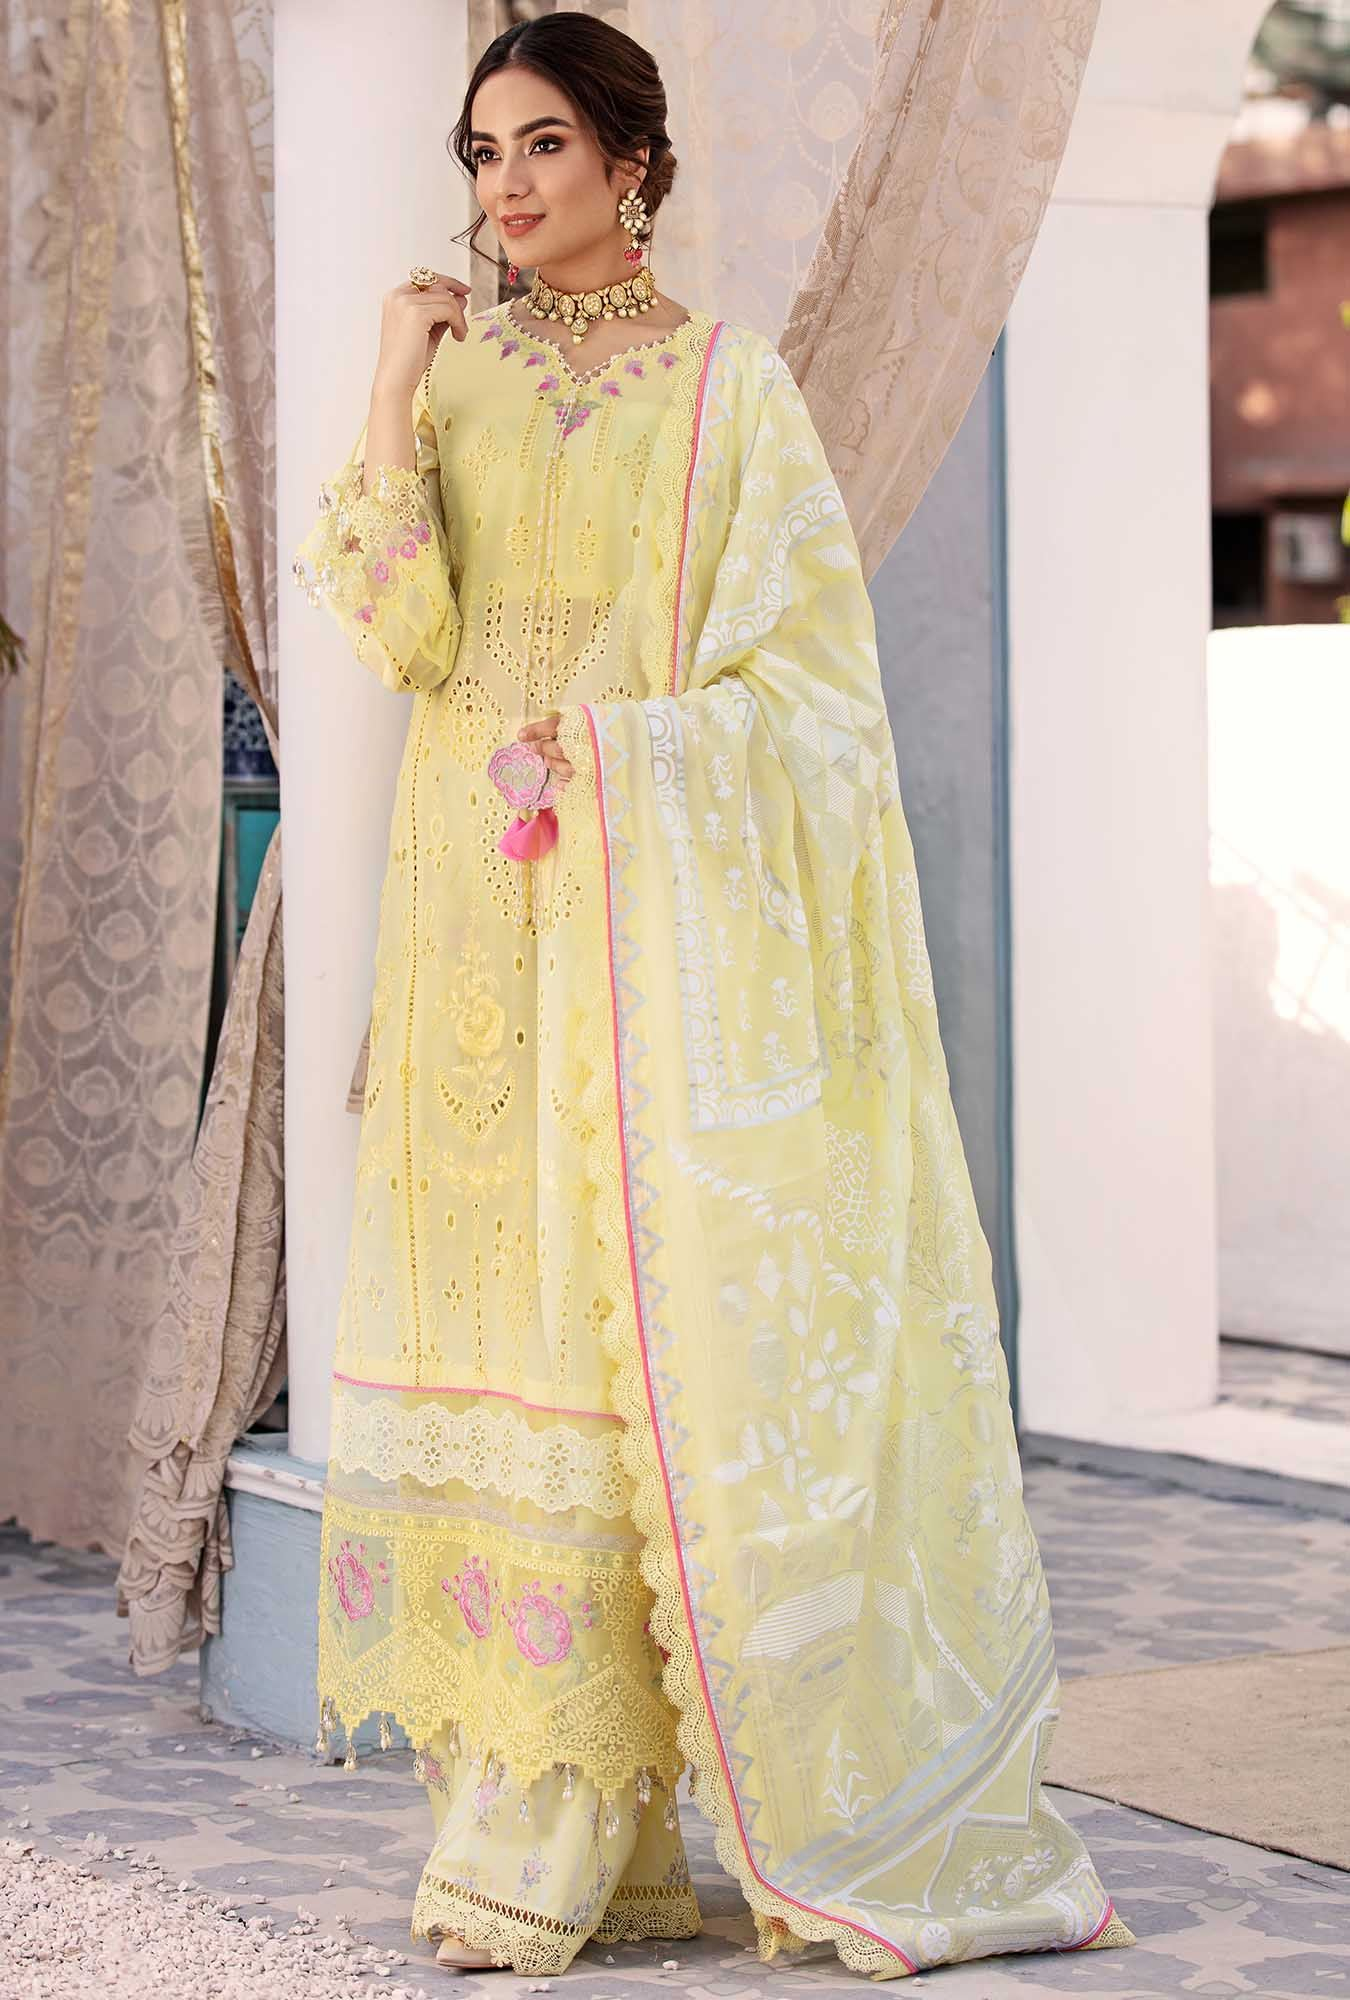 pastel yellow chikan kari suit